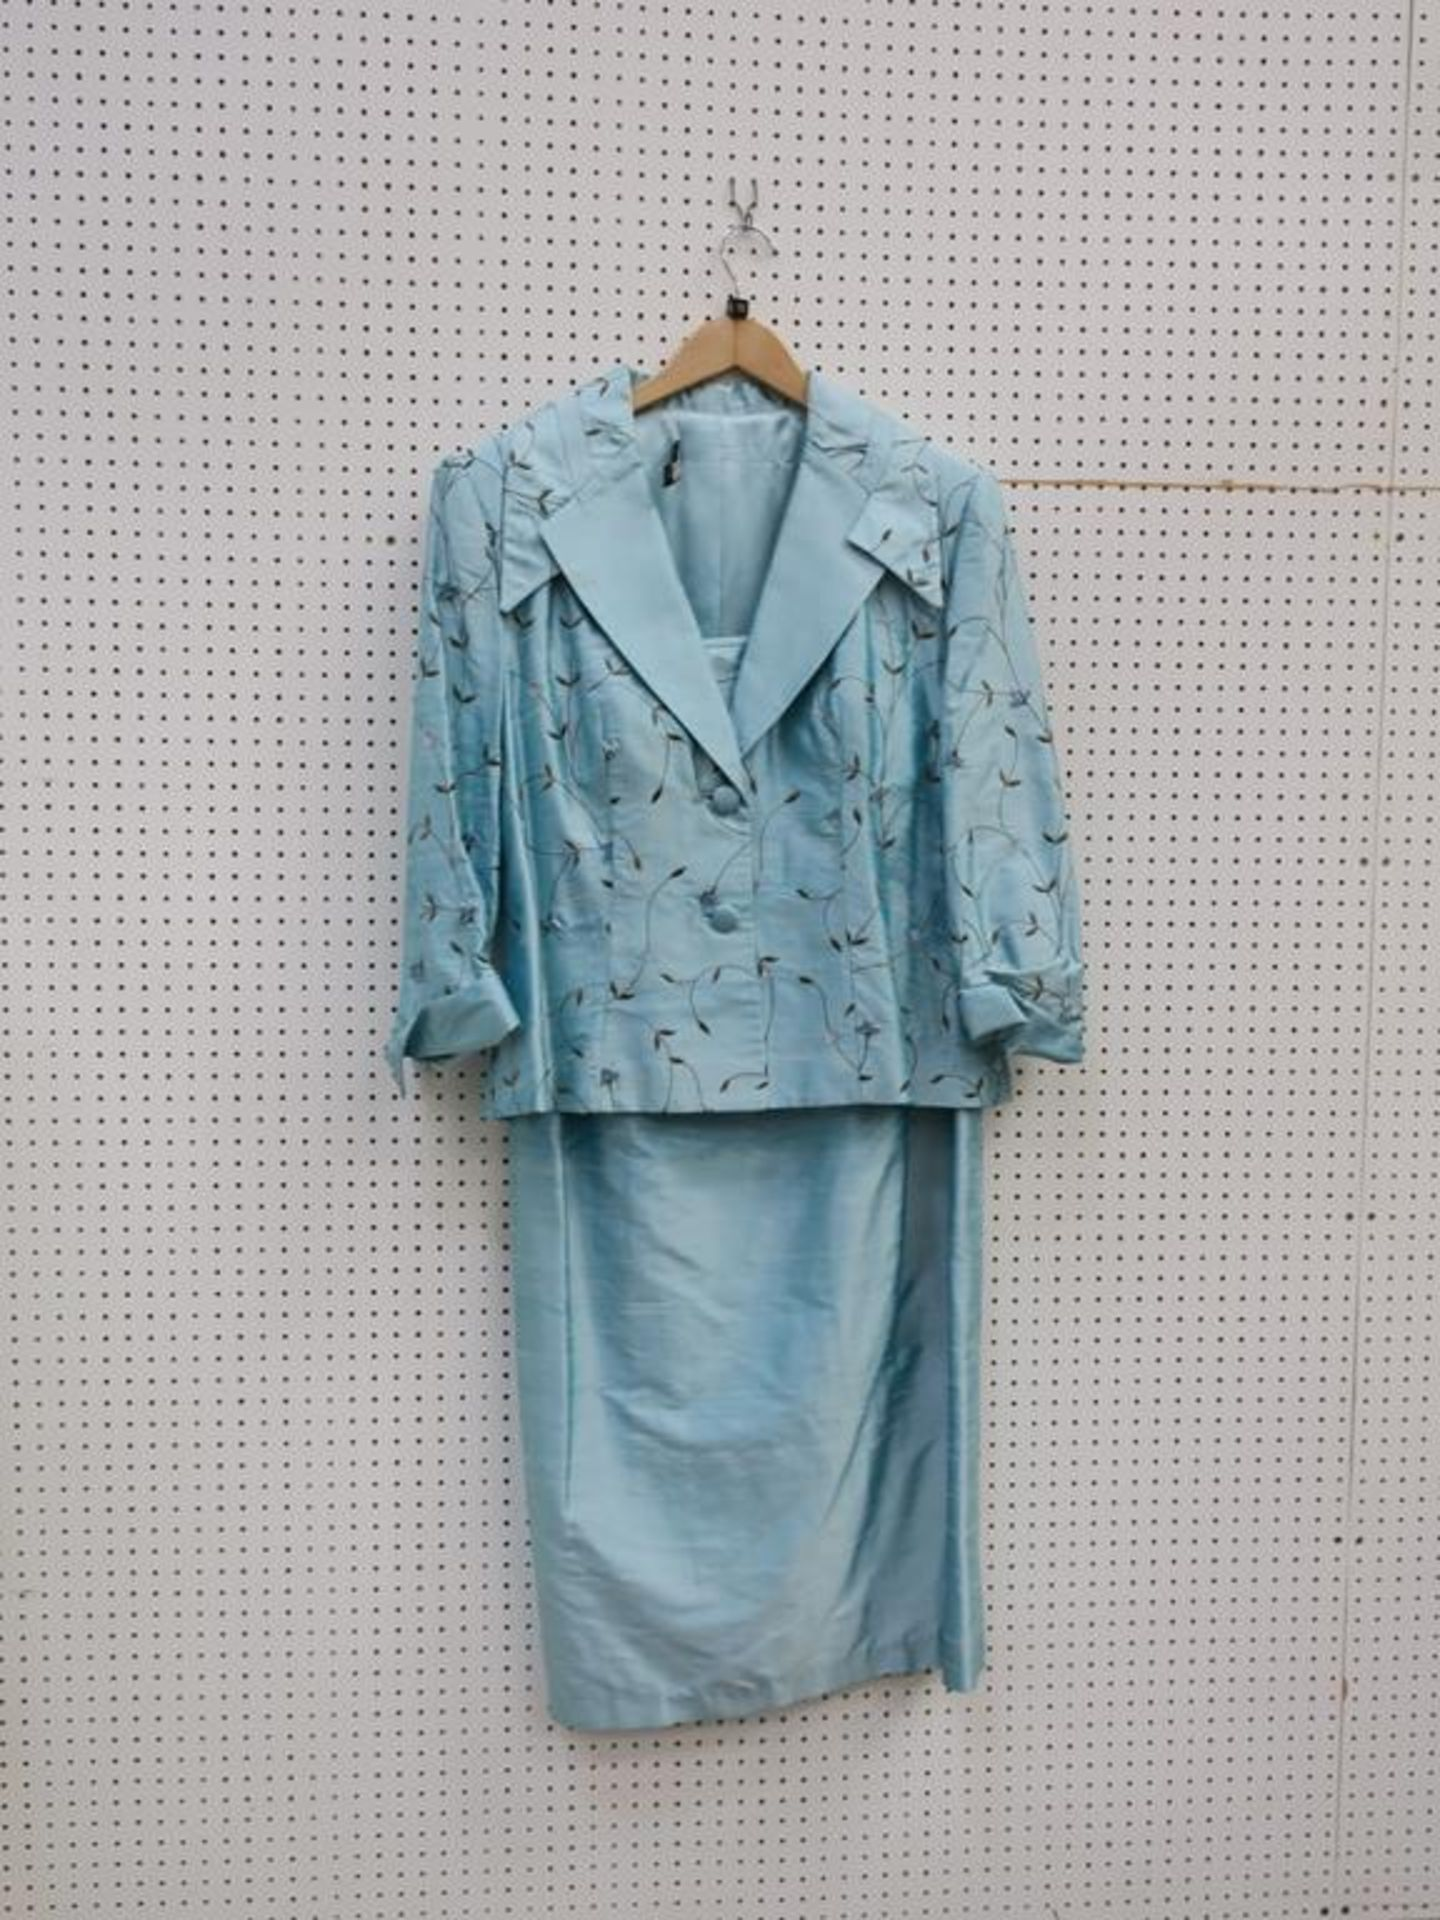 Lot 8008 - * A selection of three Ladies Garments, a Decisions (size 16), Condici (size 10), Veni Infantino (